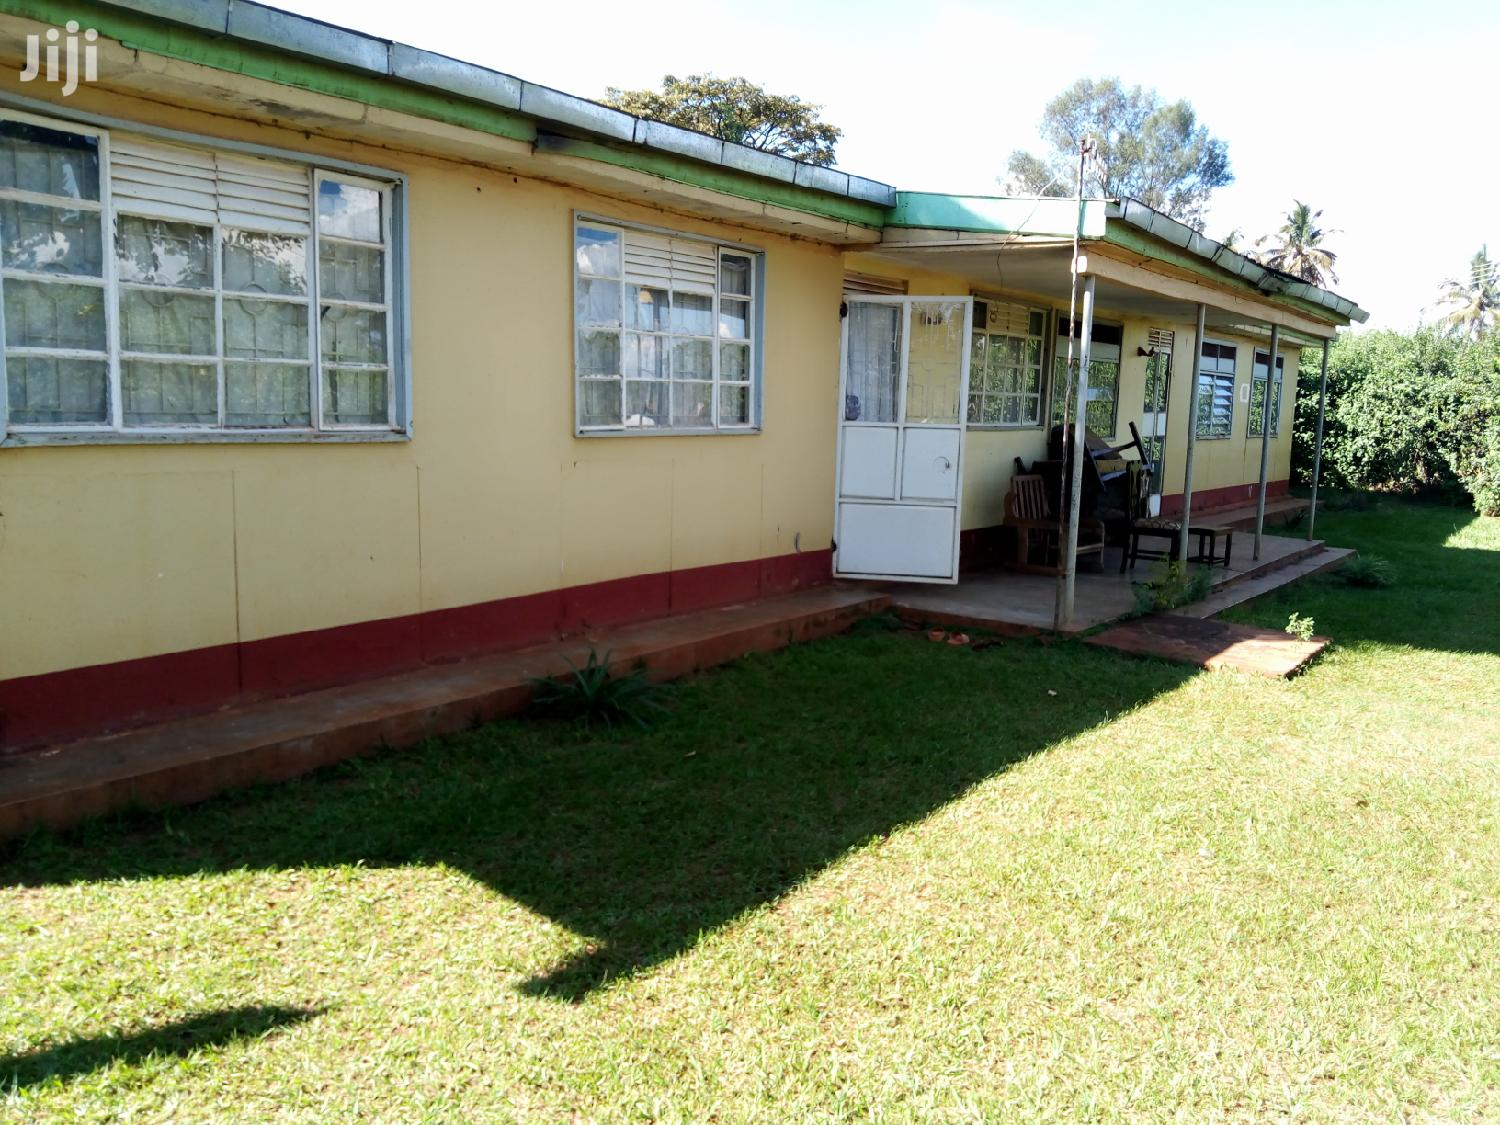 Two In One Rental House For Sale In Bukaya Buikwe District | Houses & Apartments For Sale for sale in Mukono, Central Region, Uganda